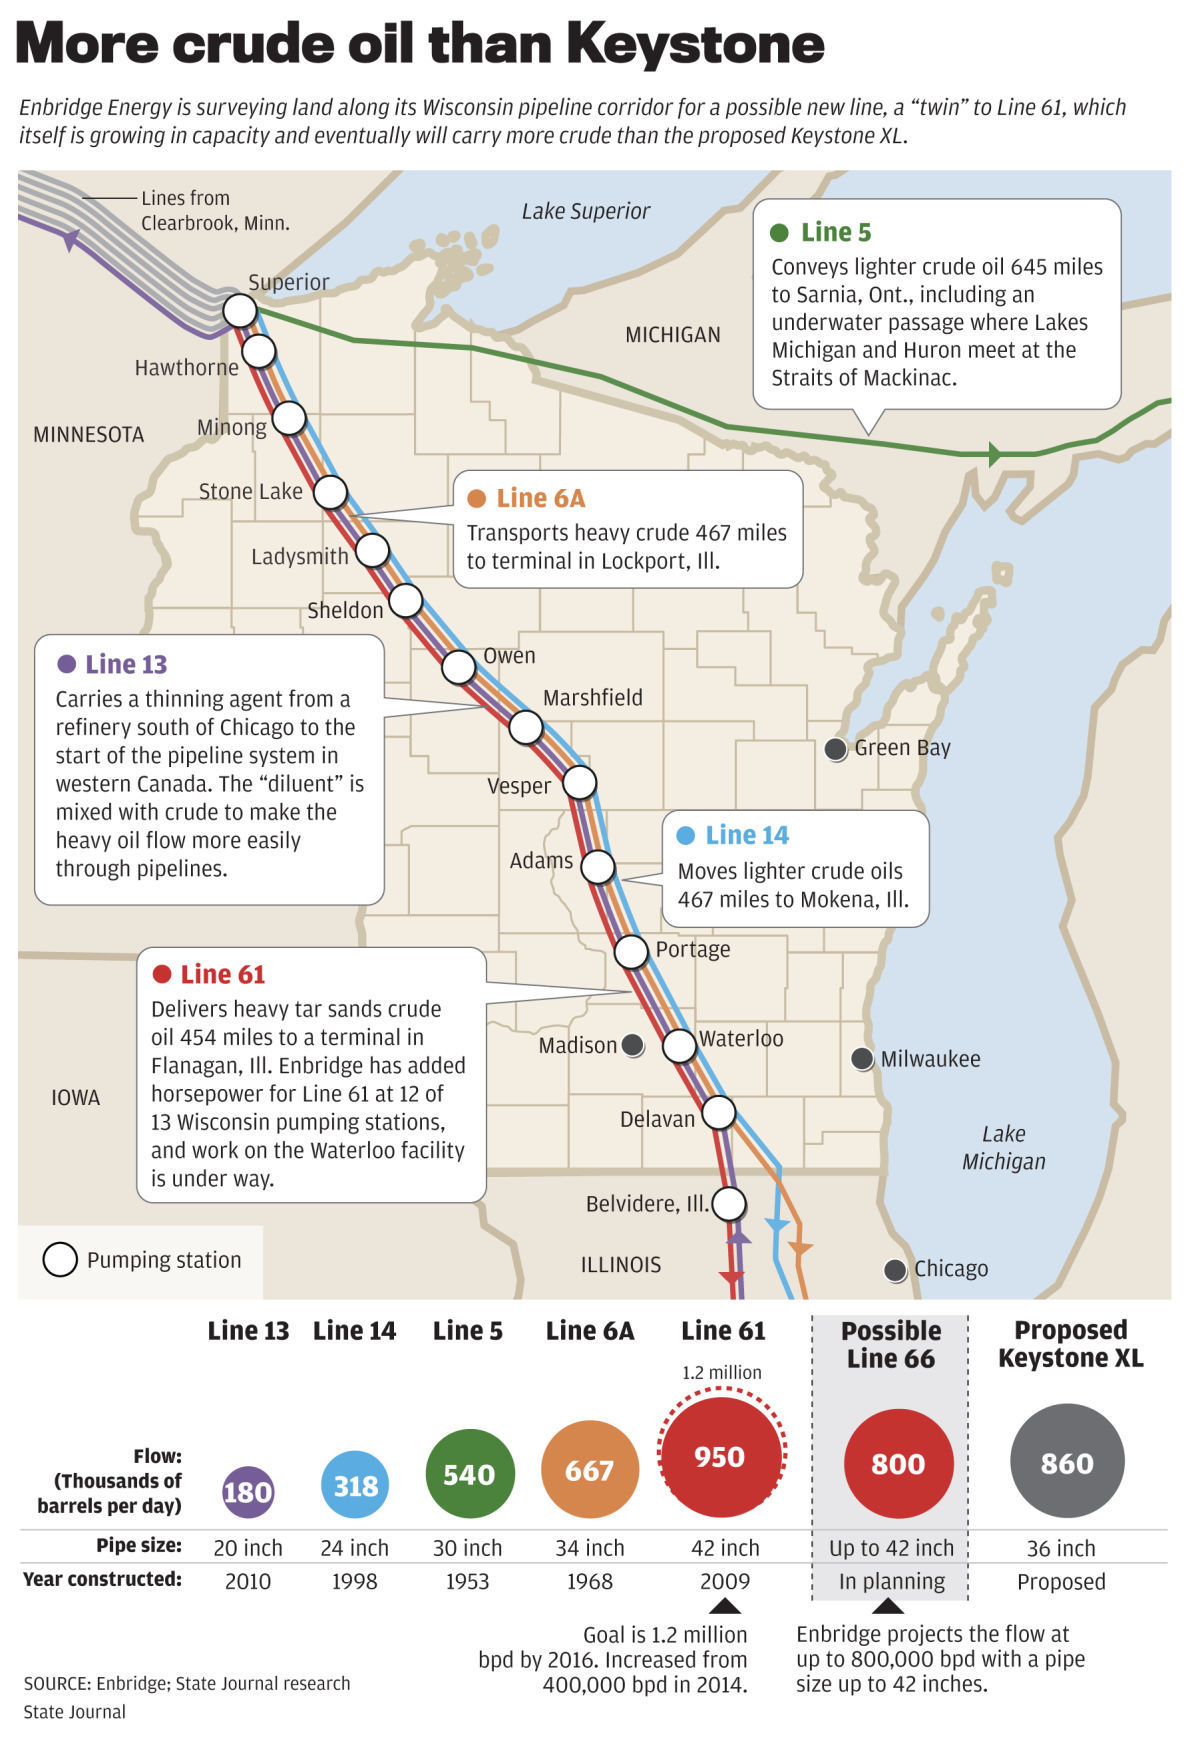 Enbridge pipeline routes